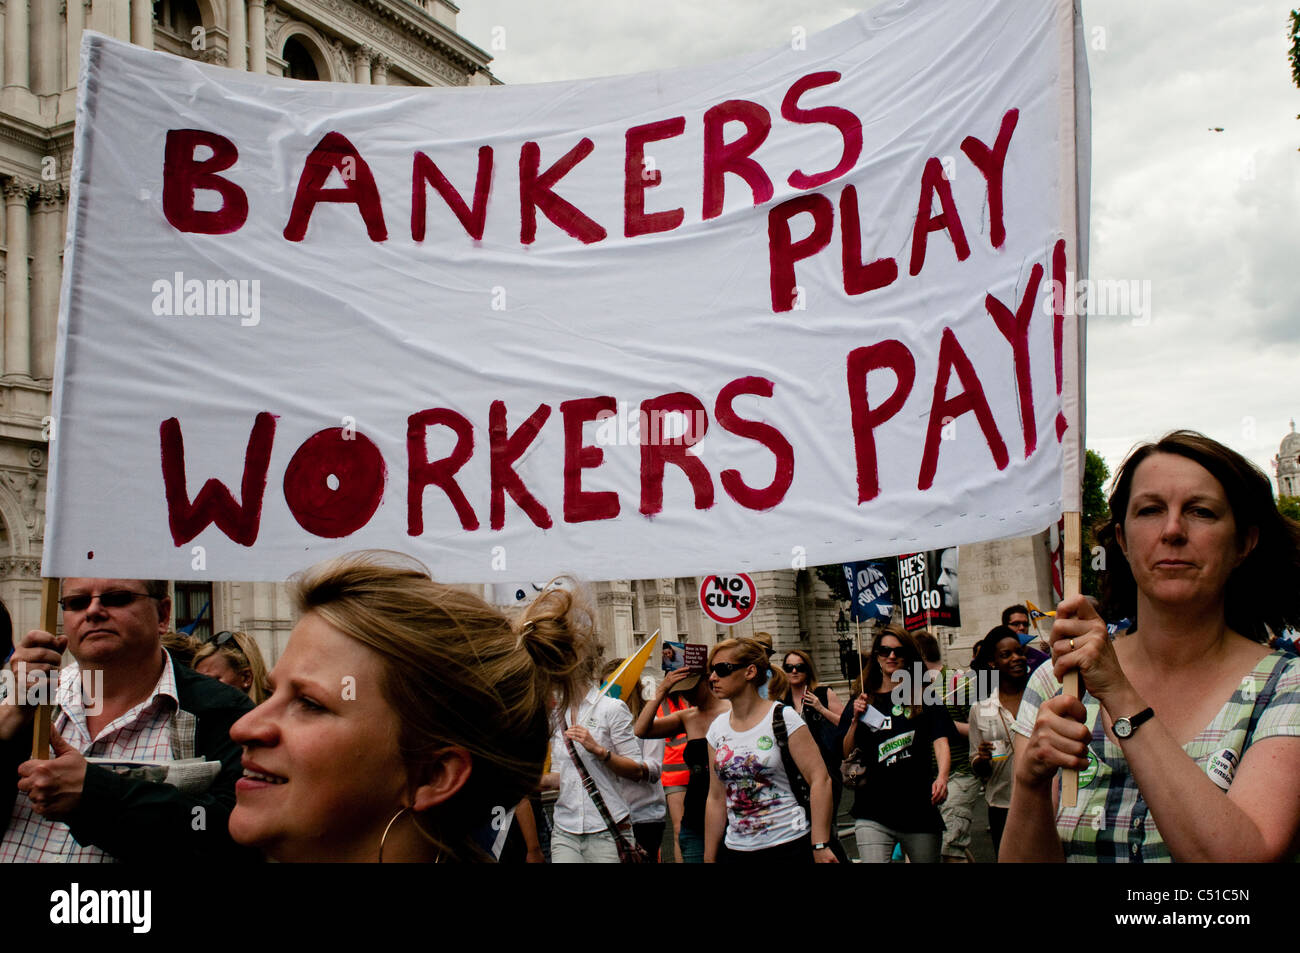 Public sector pensions strike, Whitehall, London, 30/06/2011, UK - Stock Image